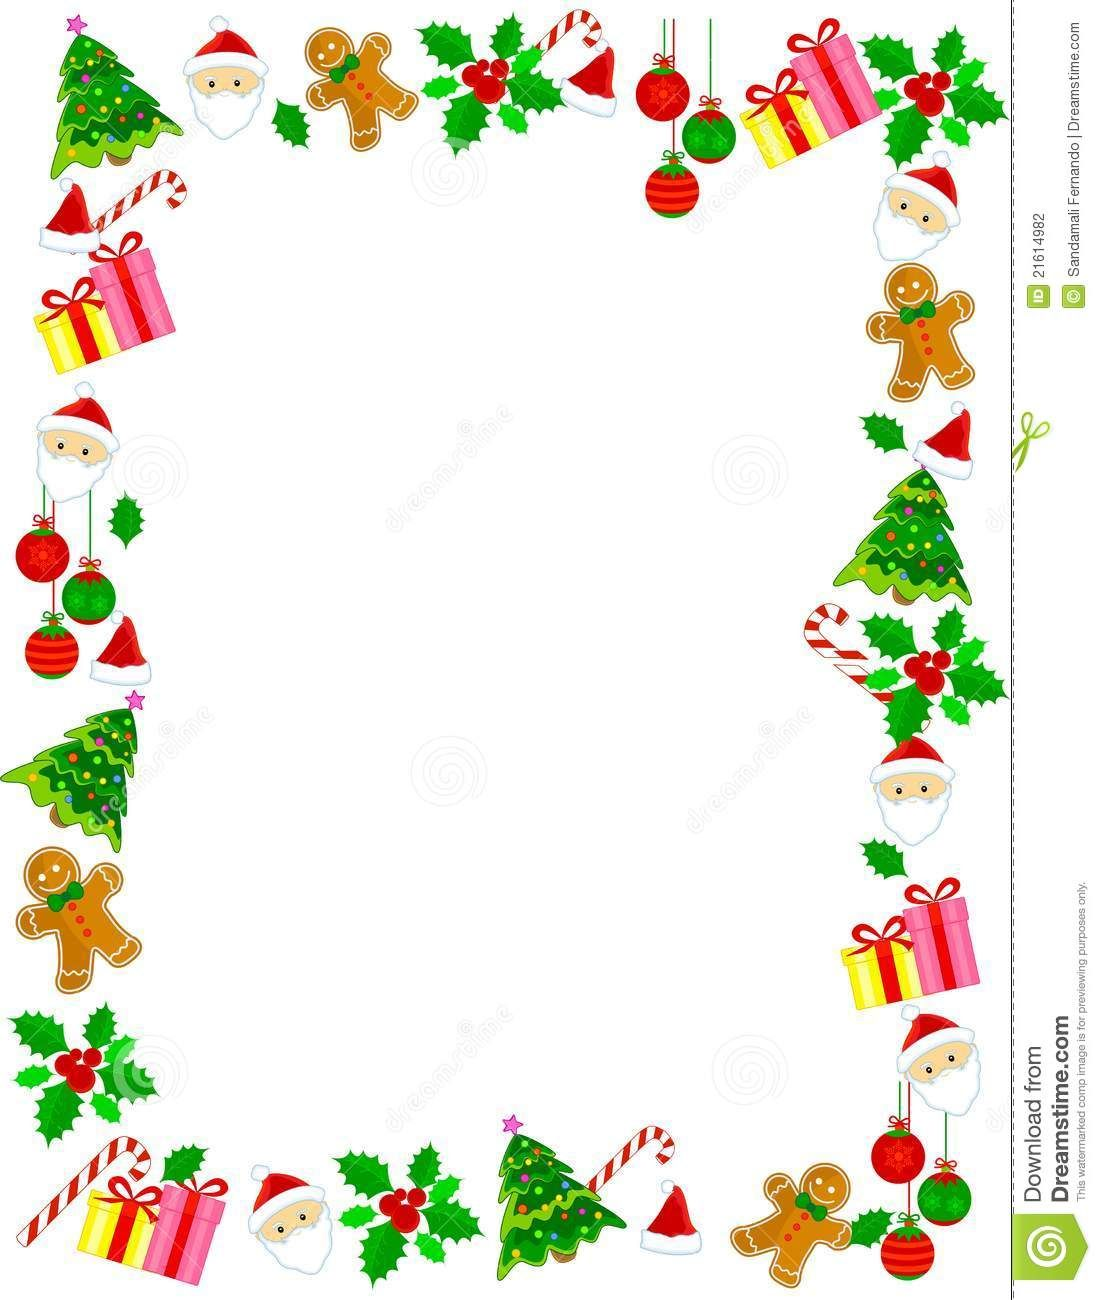 christmas border frame download from over 50 million high quality stock photos images vectors sign up for free today image 21614982